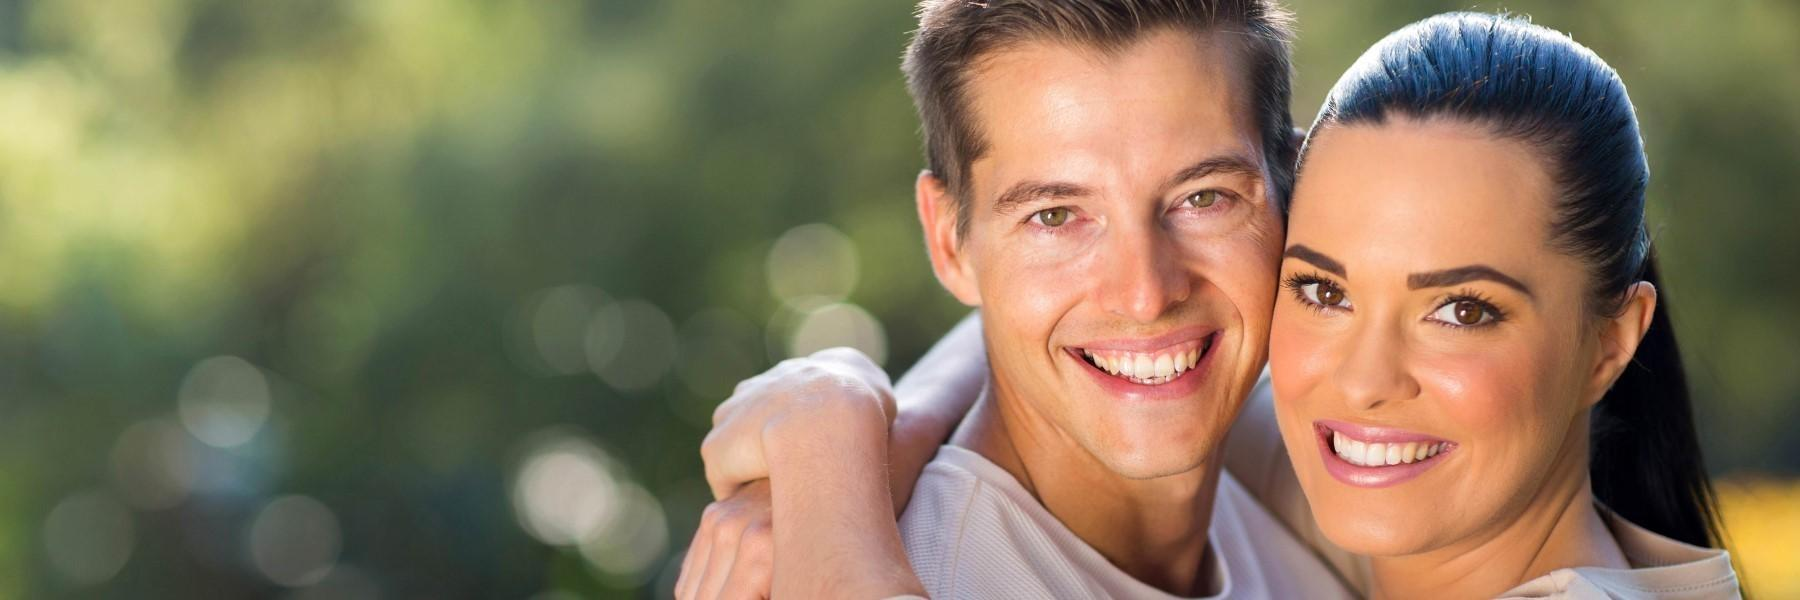 Man and woman smiling | Dentist Annapolis MD